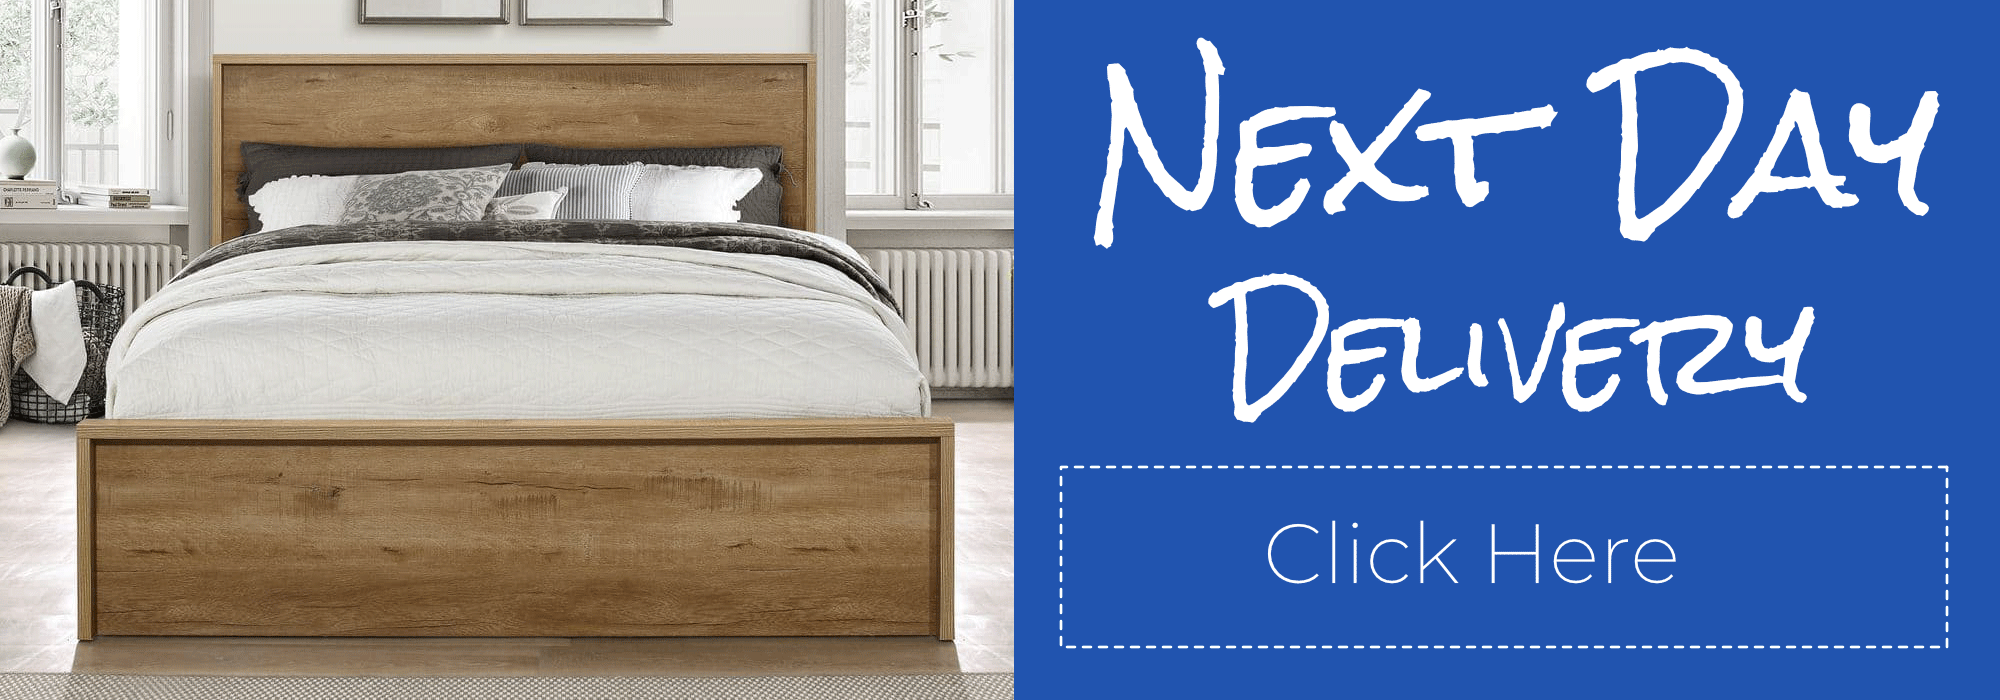 Small Double Wooden Bedsteads